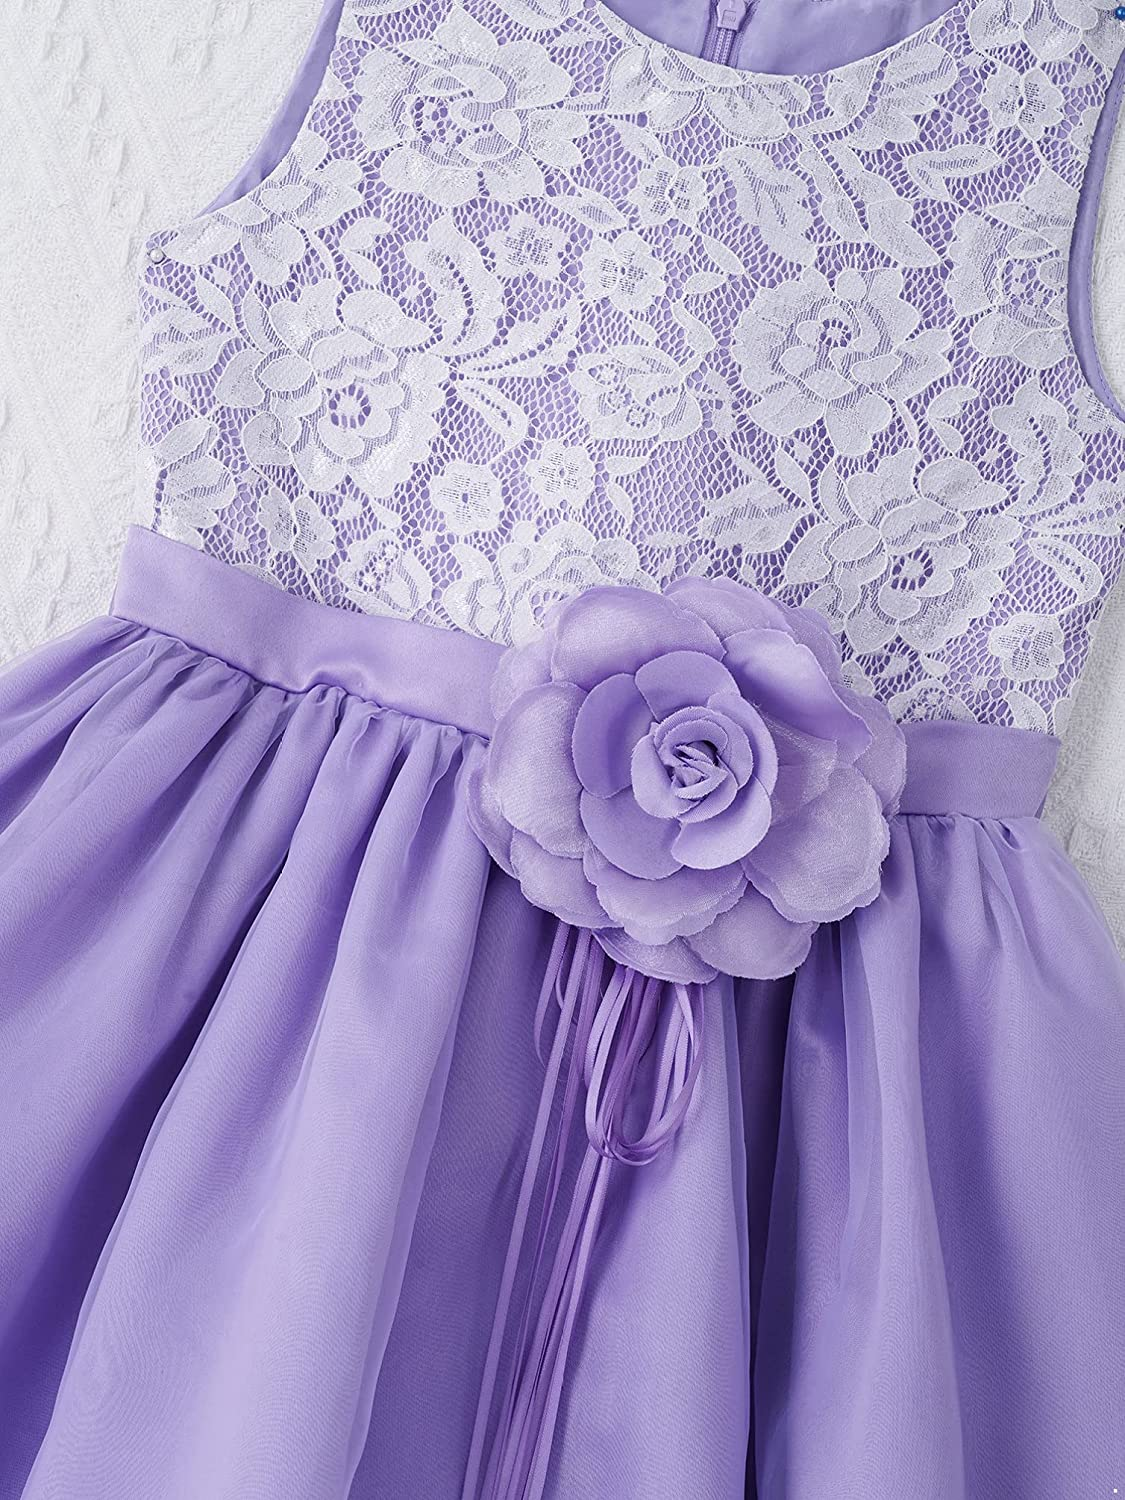 YONGHS Kids Girls Floral Lace Princess Prom Gown Sleeveless Wedding Birthday Party Tulle Flower Girl Dress